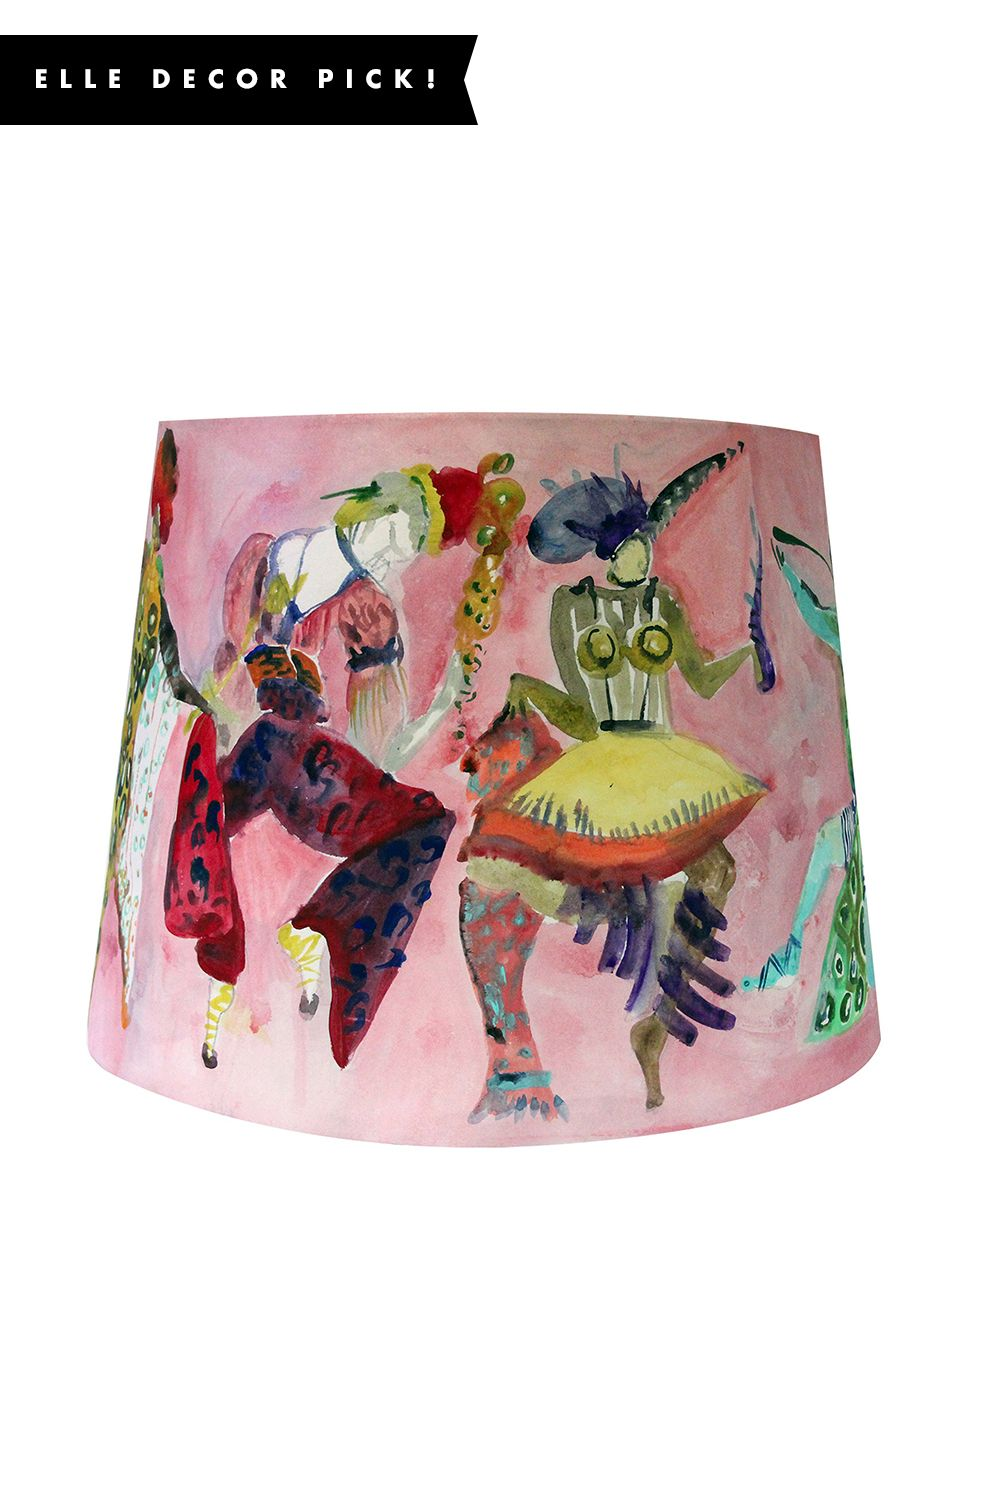 "<p>""A painterly party scene, rendered here on wallpapered lamp shades,&nbsp&#x3B;is the perfect way to kick off the year-end entertaining season.""</p><p><em data-redactor-tag=""em"" data-verified=""redactor"">SHOP NOW: Voutsa Ballet Russes Lampshade, $650&#x3B; <a href=""https://www.panierhome.com/makers-1/ballet-russes-pink-lamp-shade"" target=""_blank"" data-tracking-id=""recirc-text-link"">panierhome.com</a></em></p>"